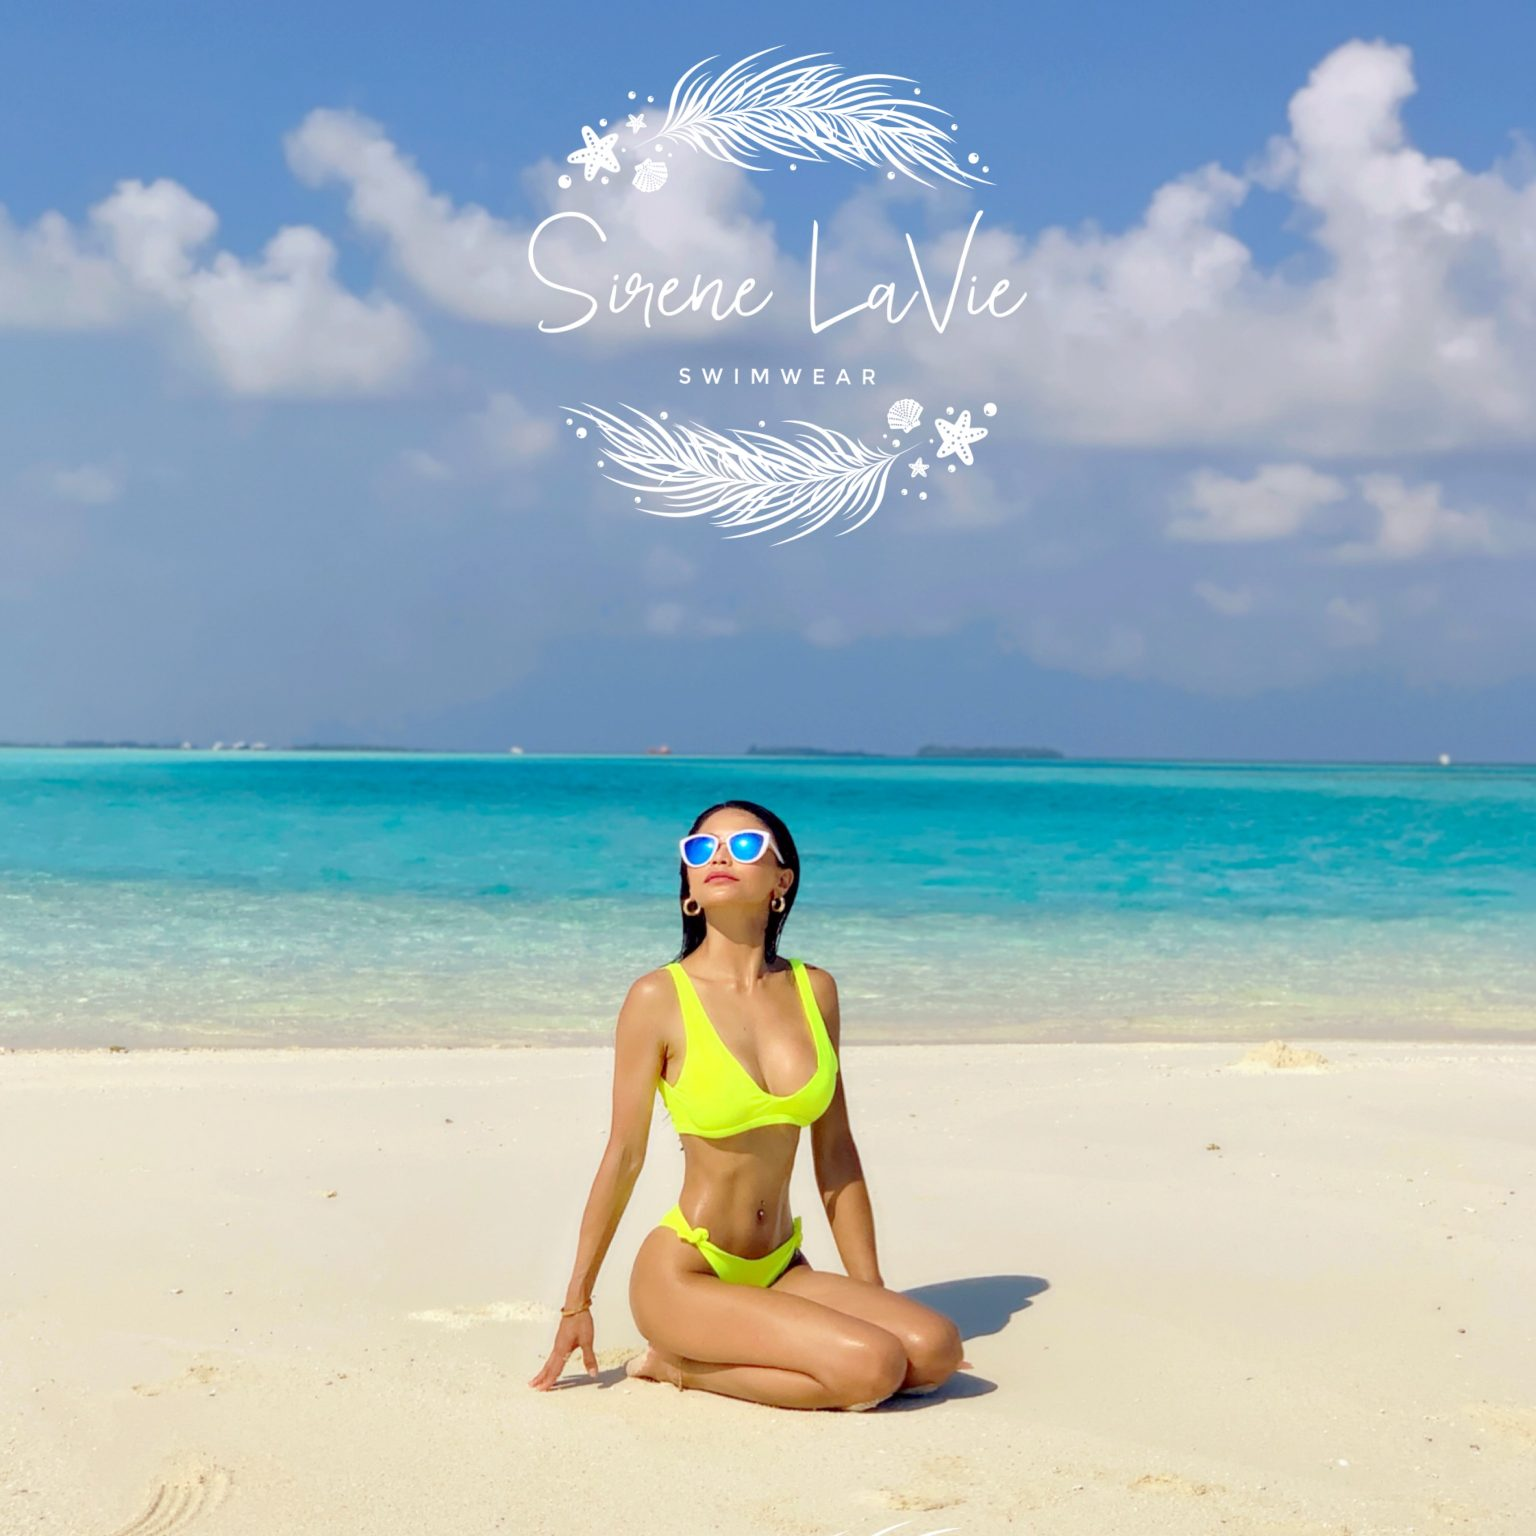 Sirene LaVie Swimwear